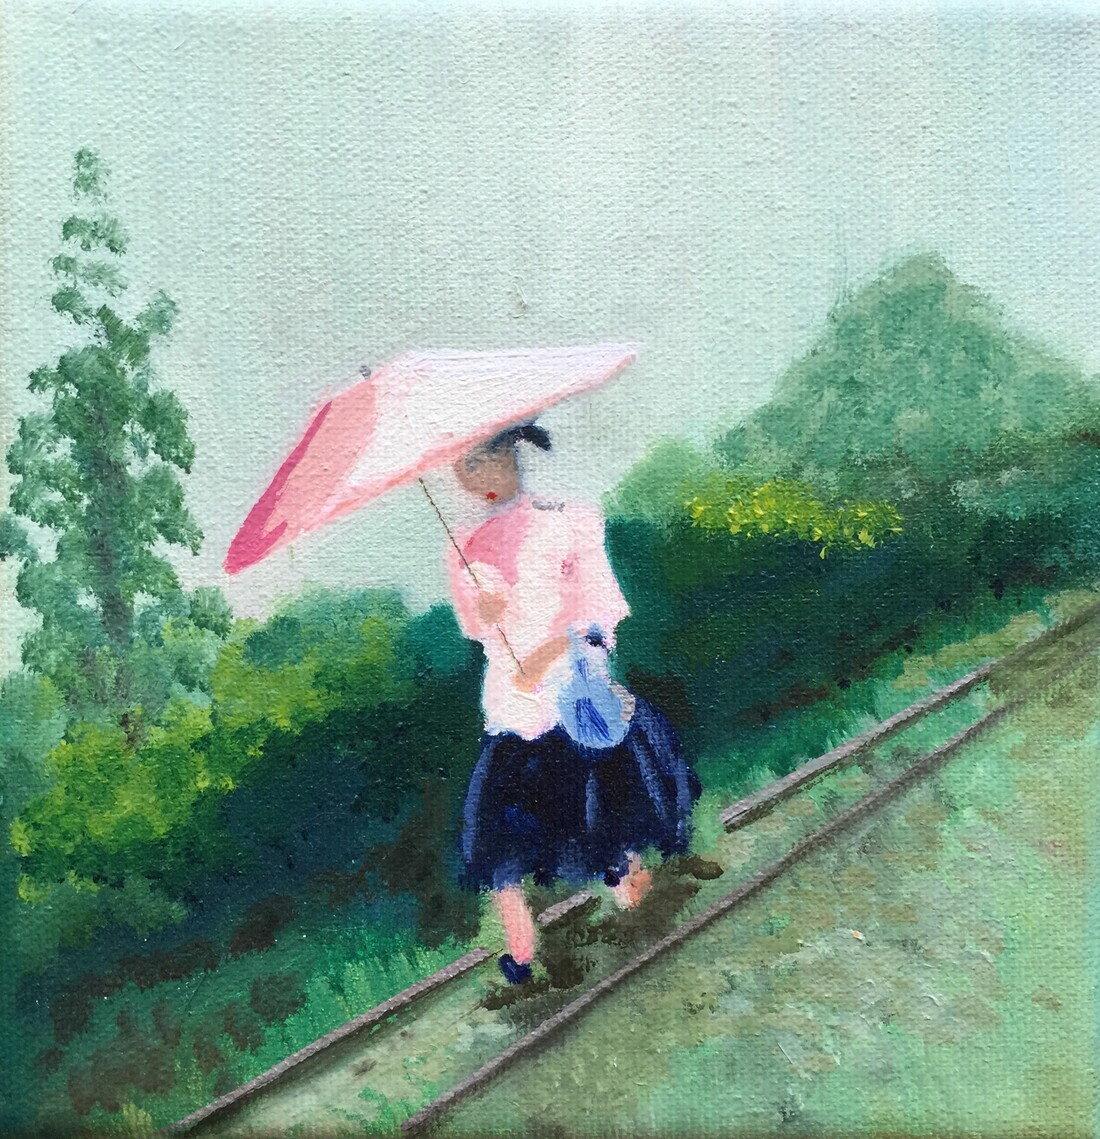 Painting of a woman under a pink umbrella walking along train tracks